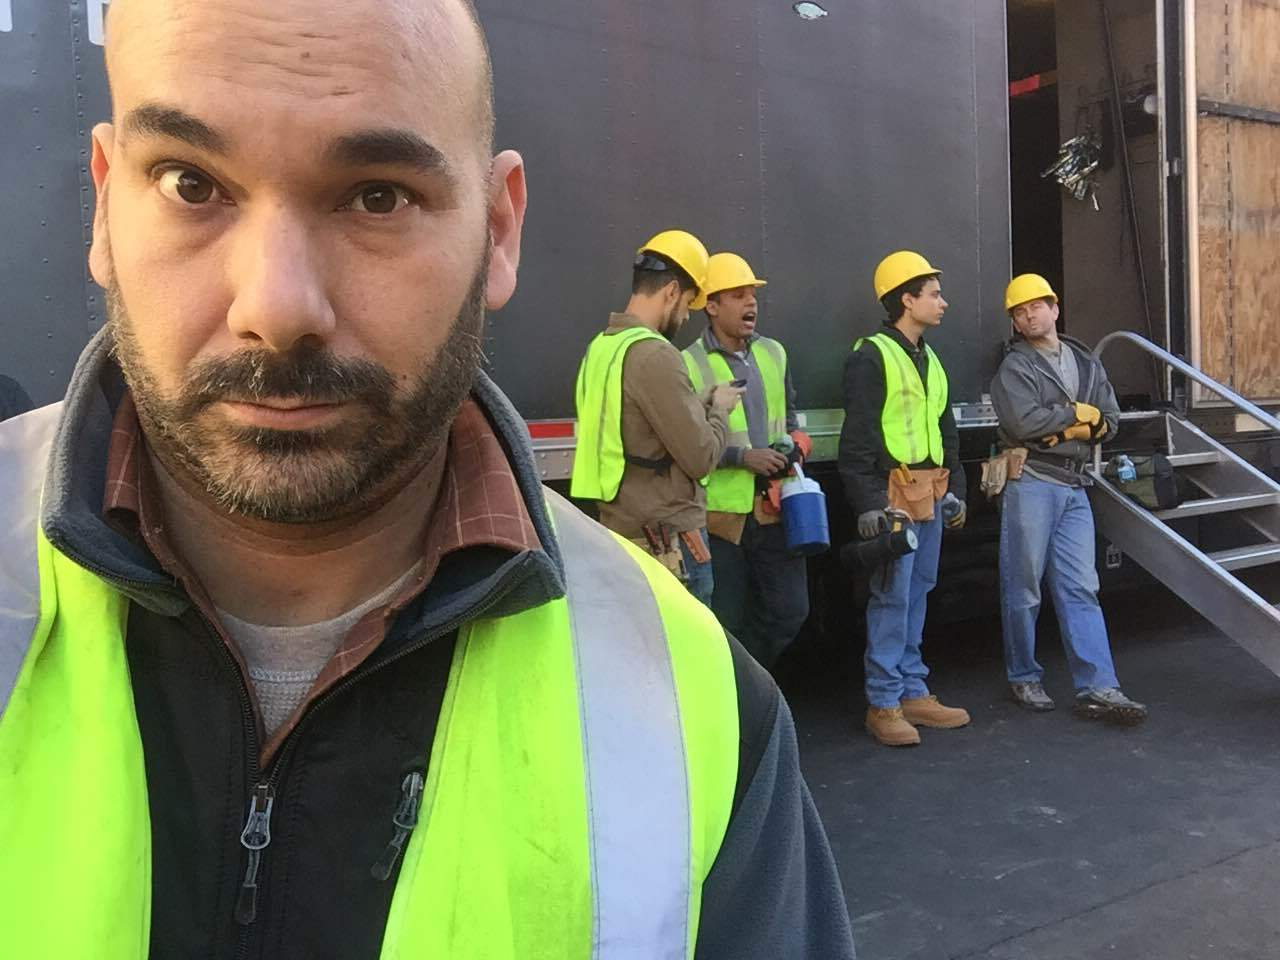 My construction crew on CSI:Cyber